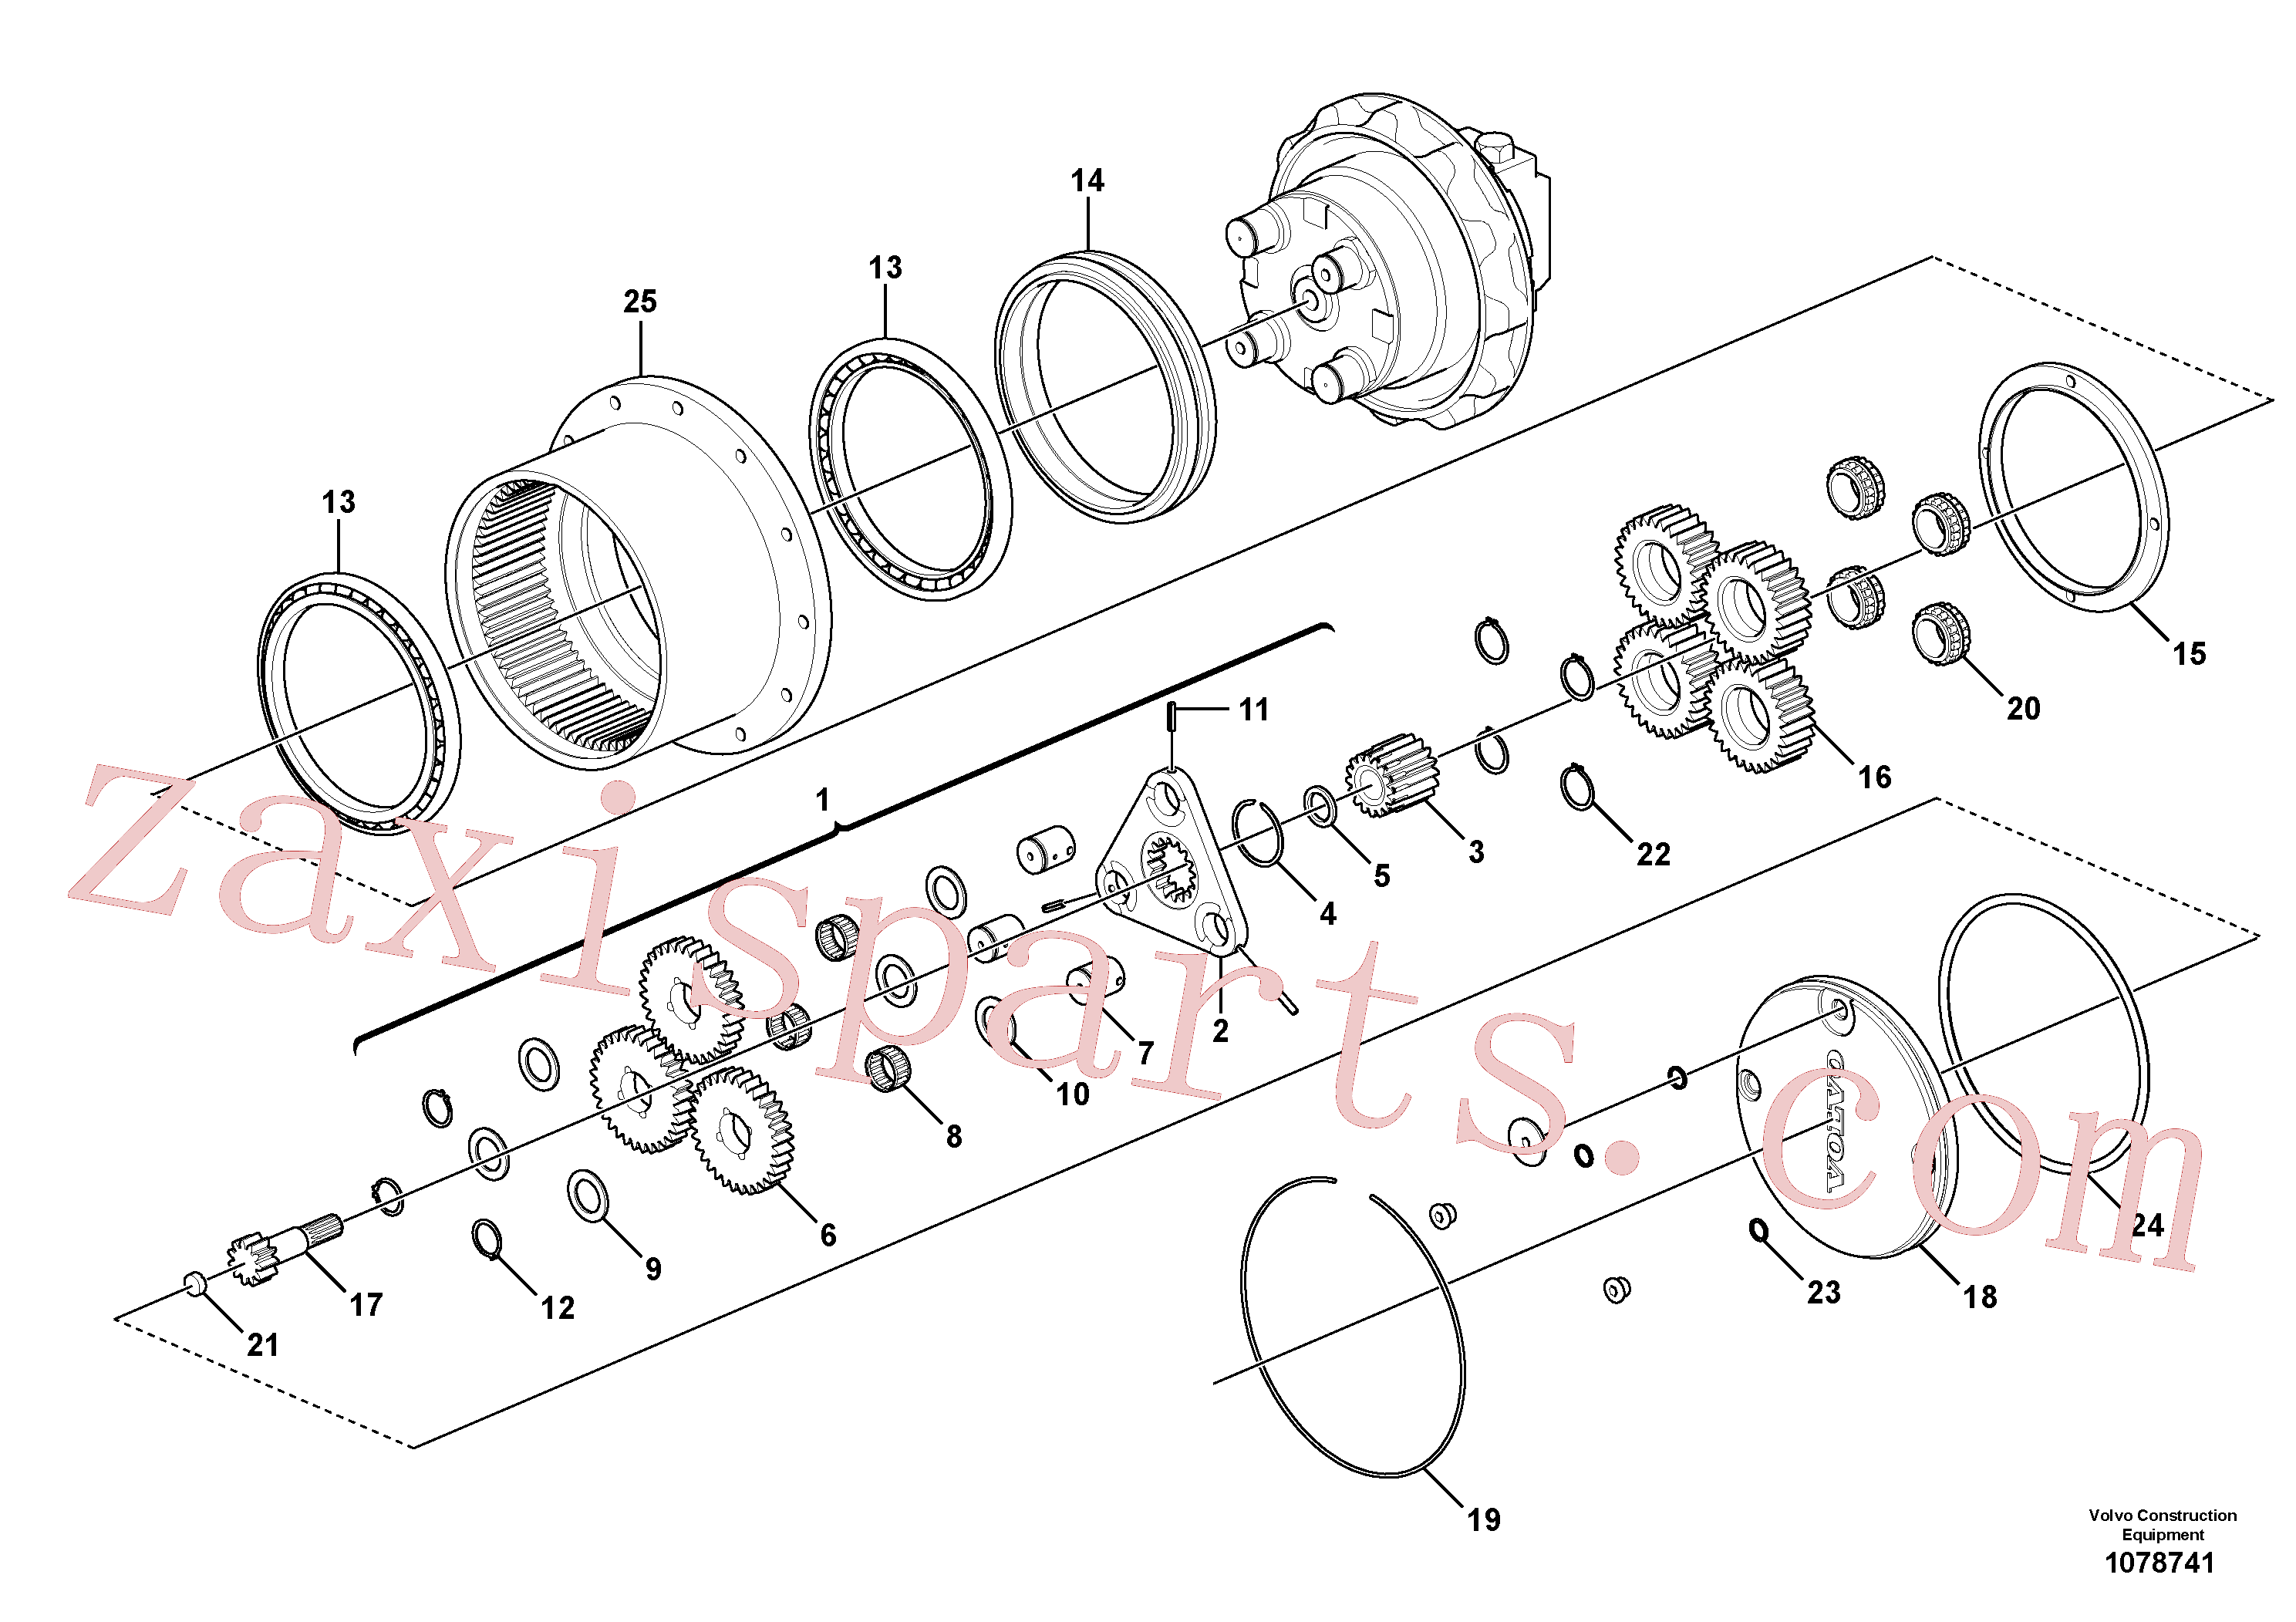 VOE14516567 for Volvo Travel gearbox(1078741 assembly)